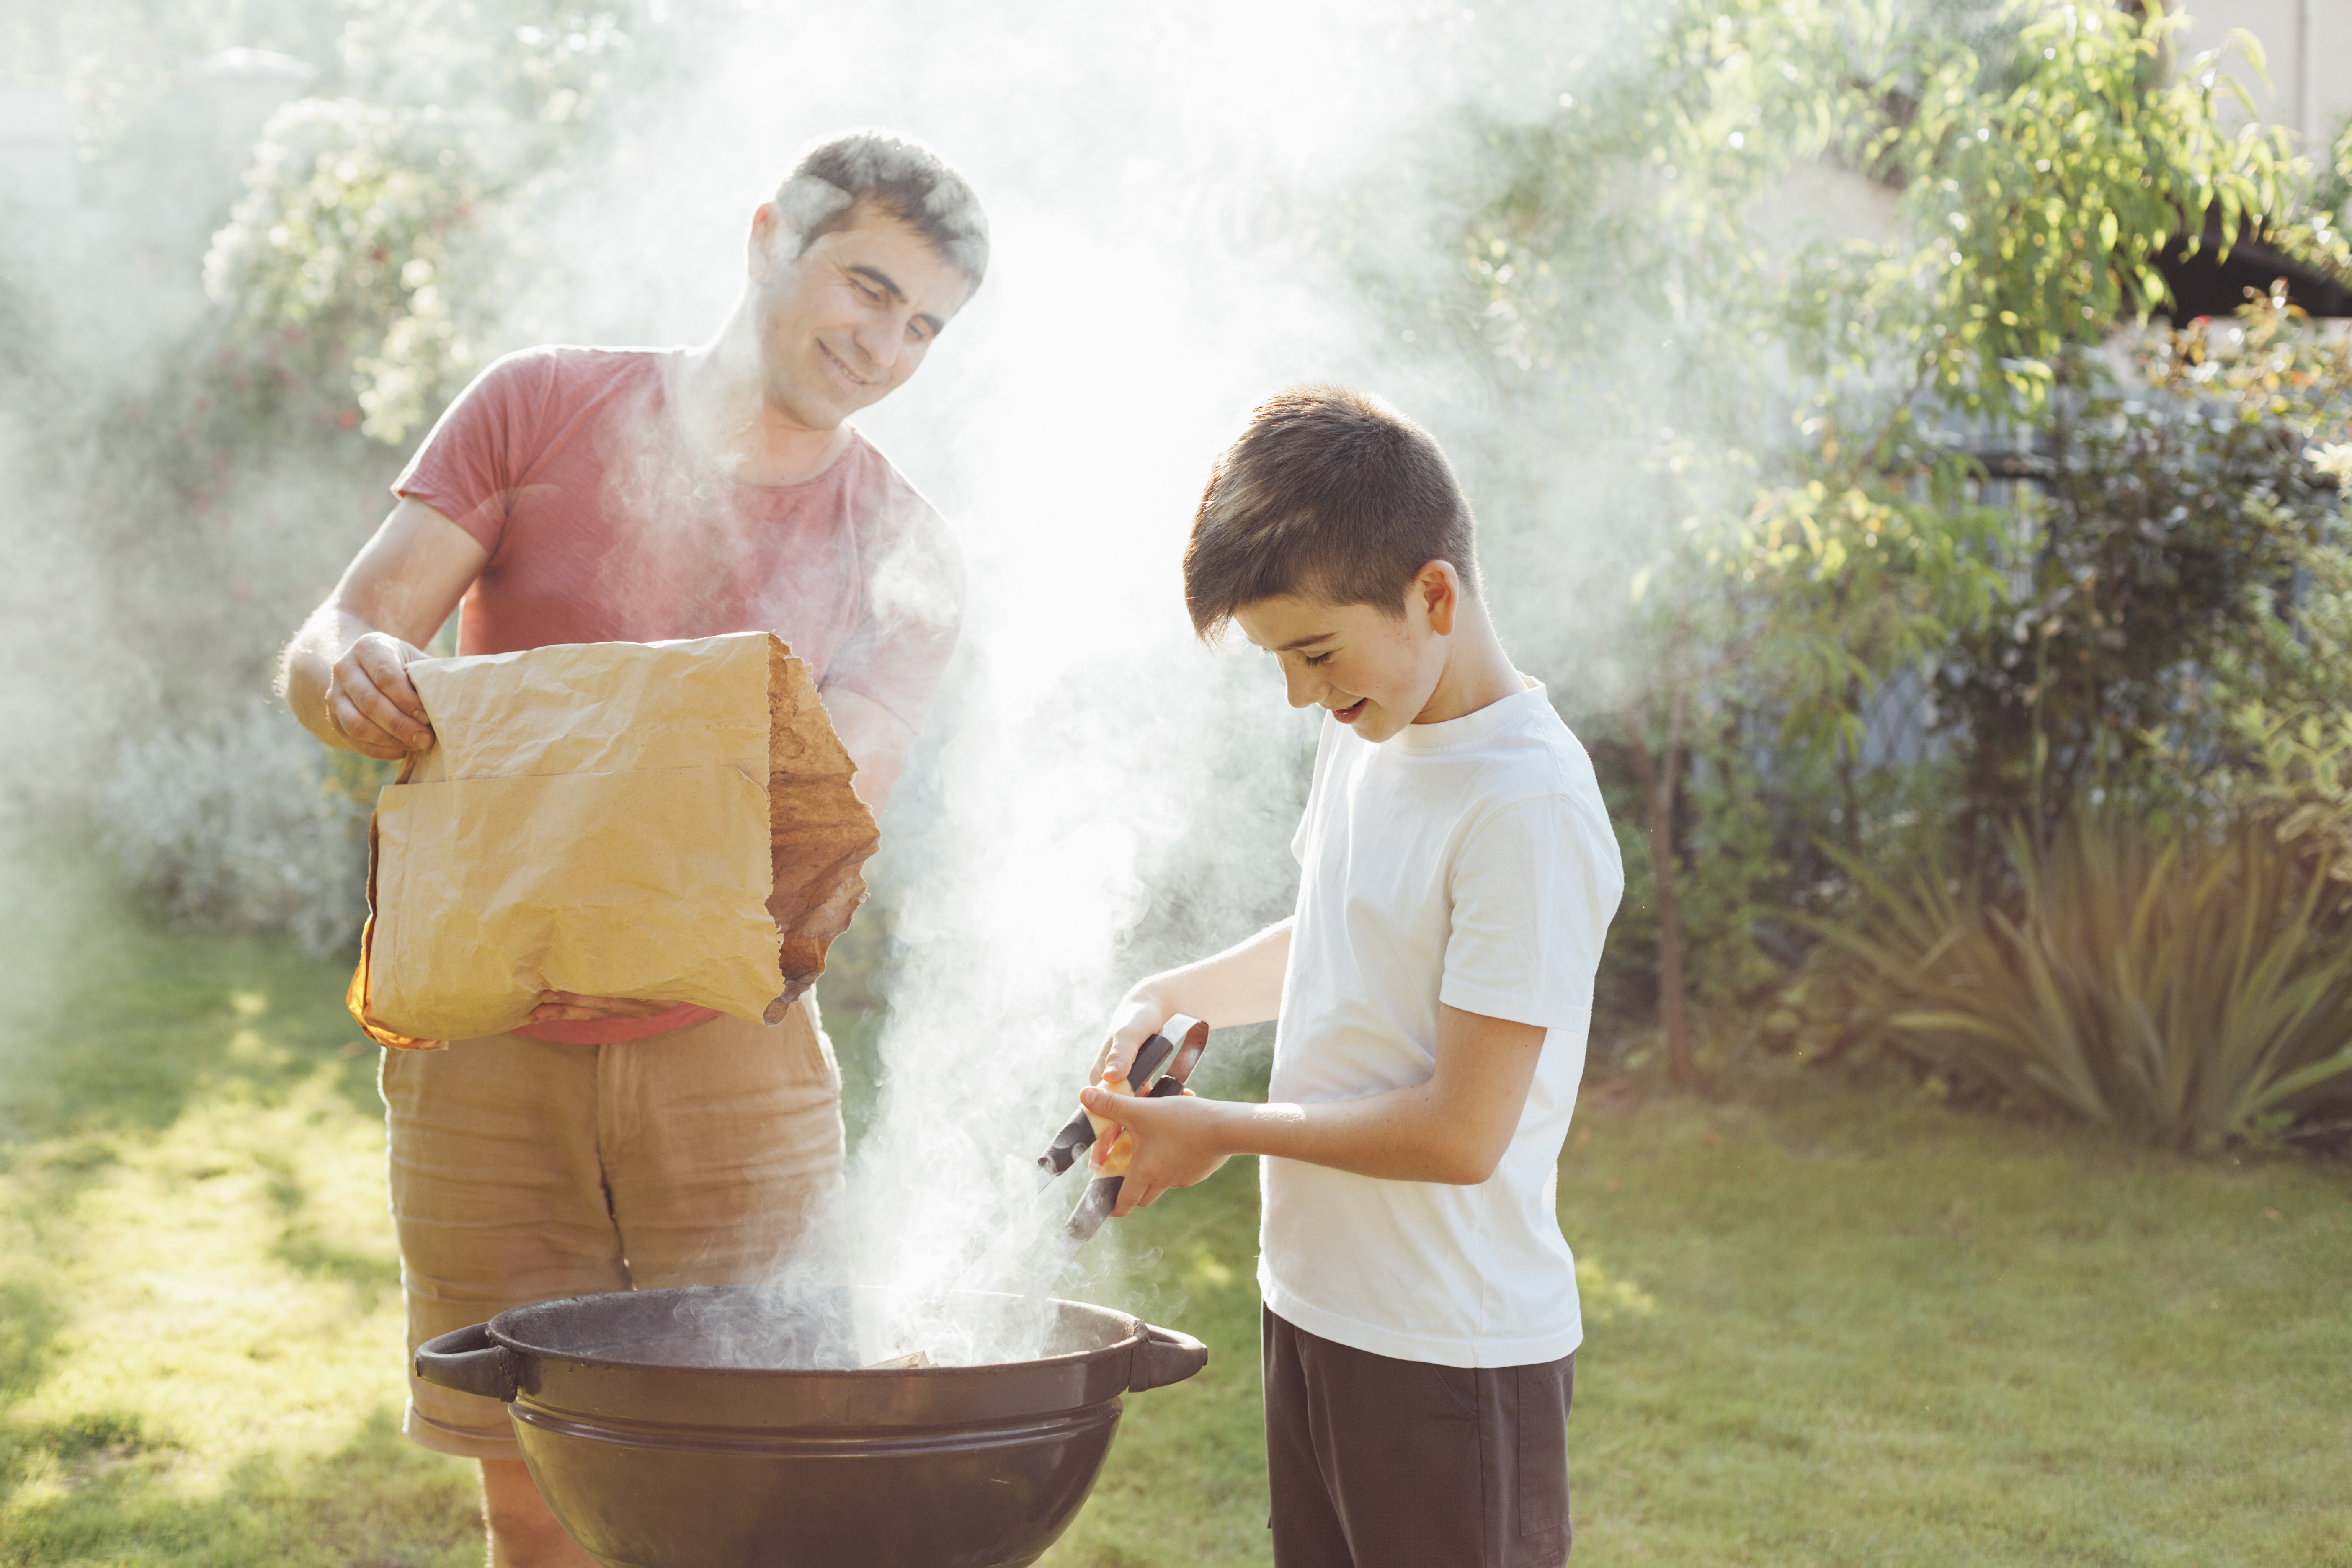 A father and his son having good time barbequing. Plenty of smoke comes are coming out of their oven.